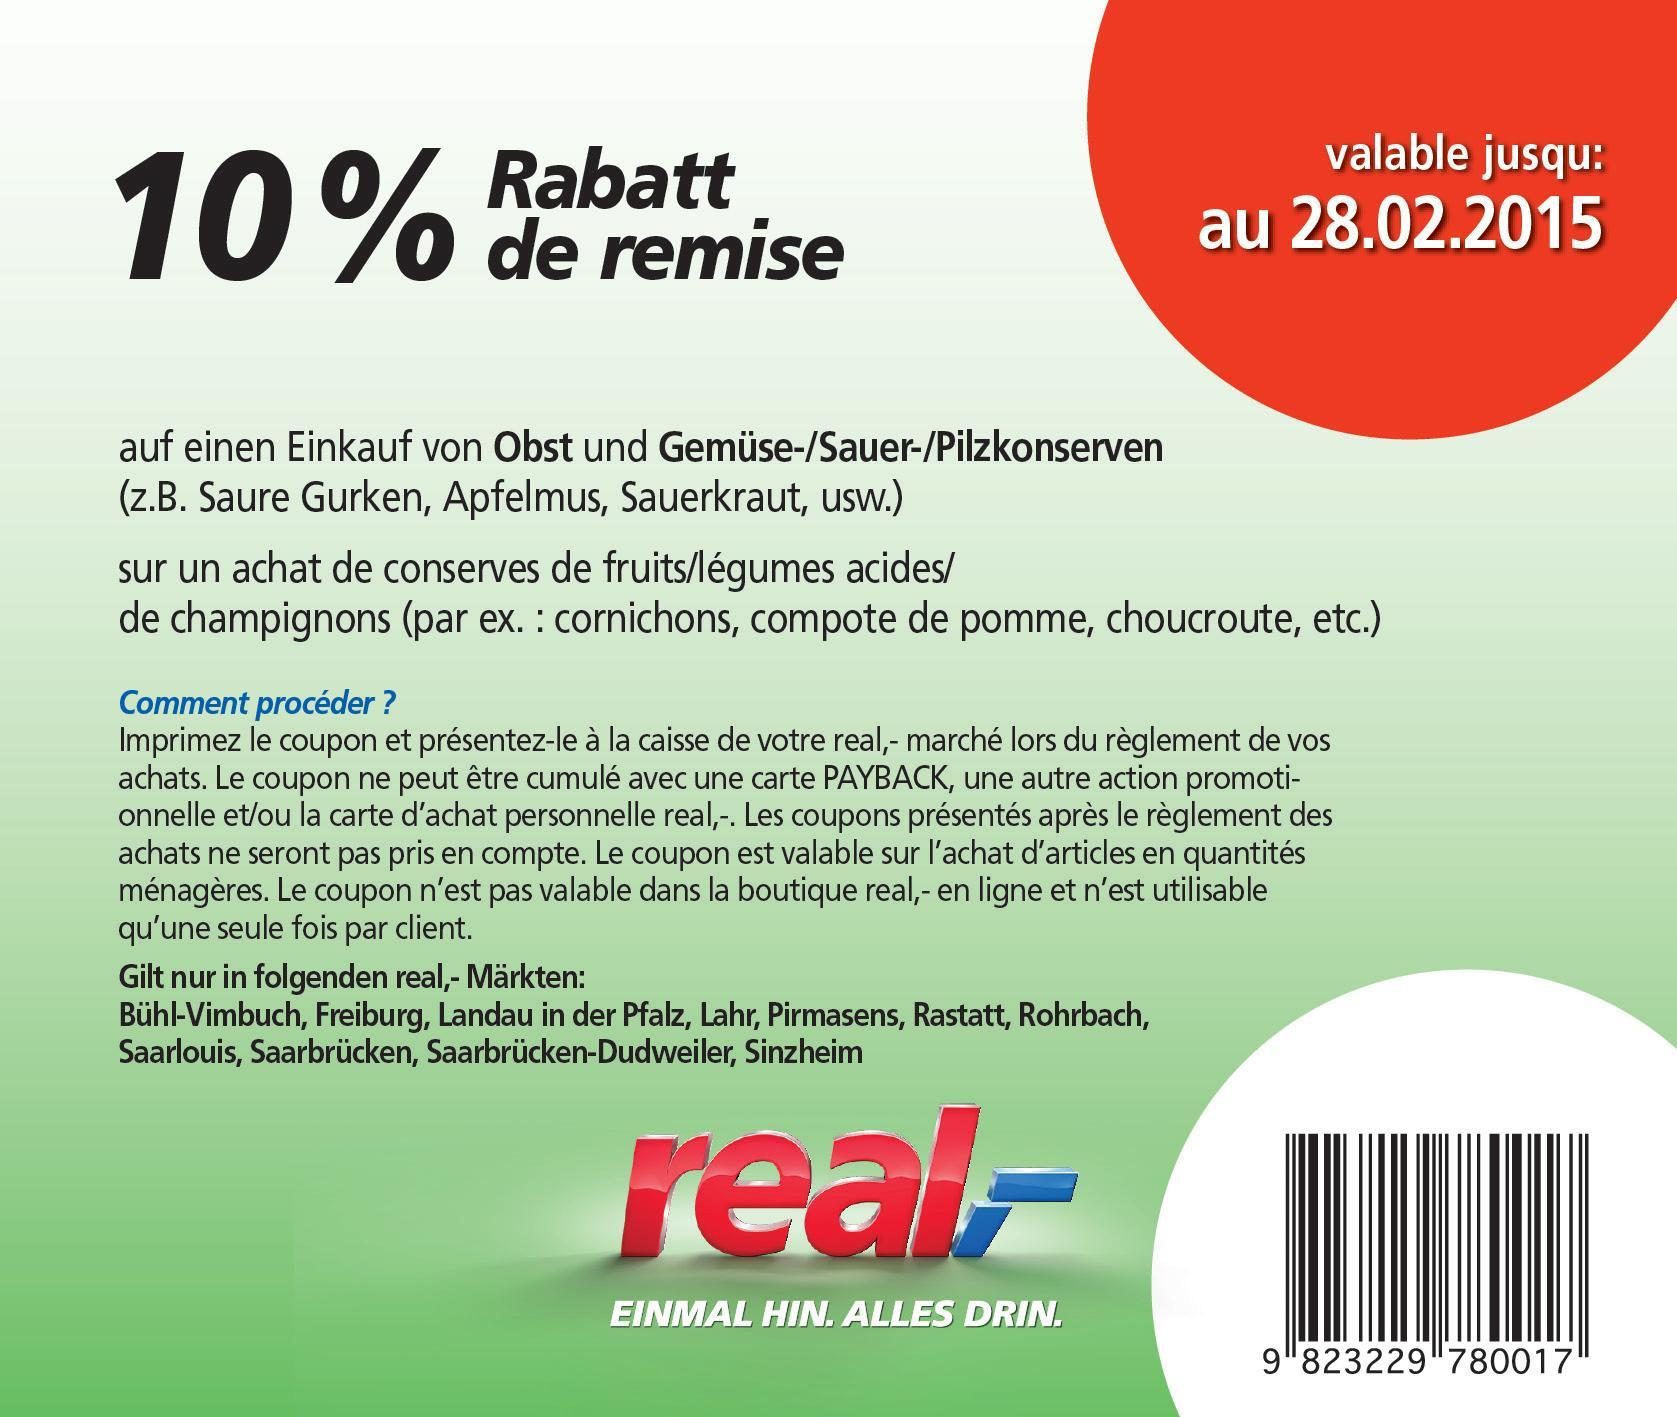 coupons_feb_2015_fr-pjbfyv.jpg